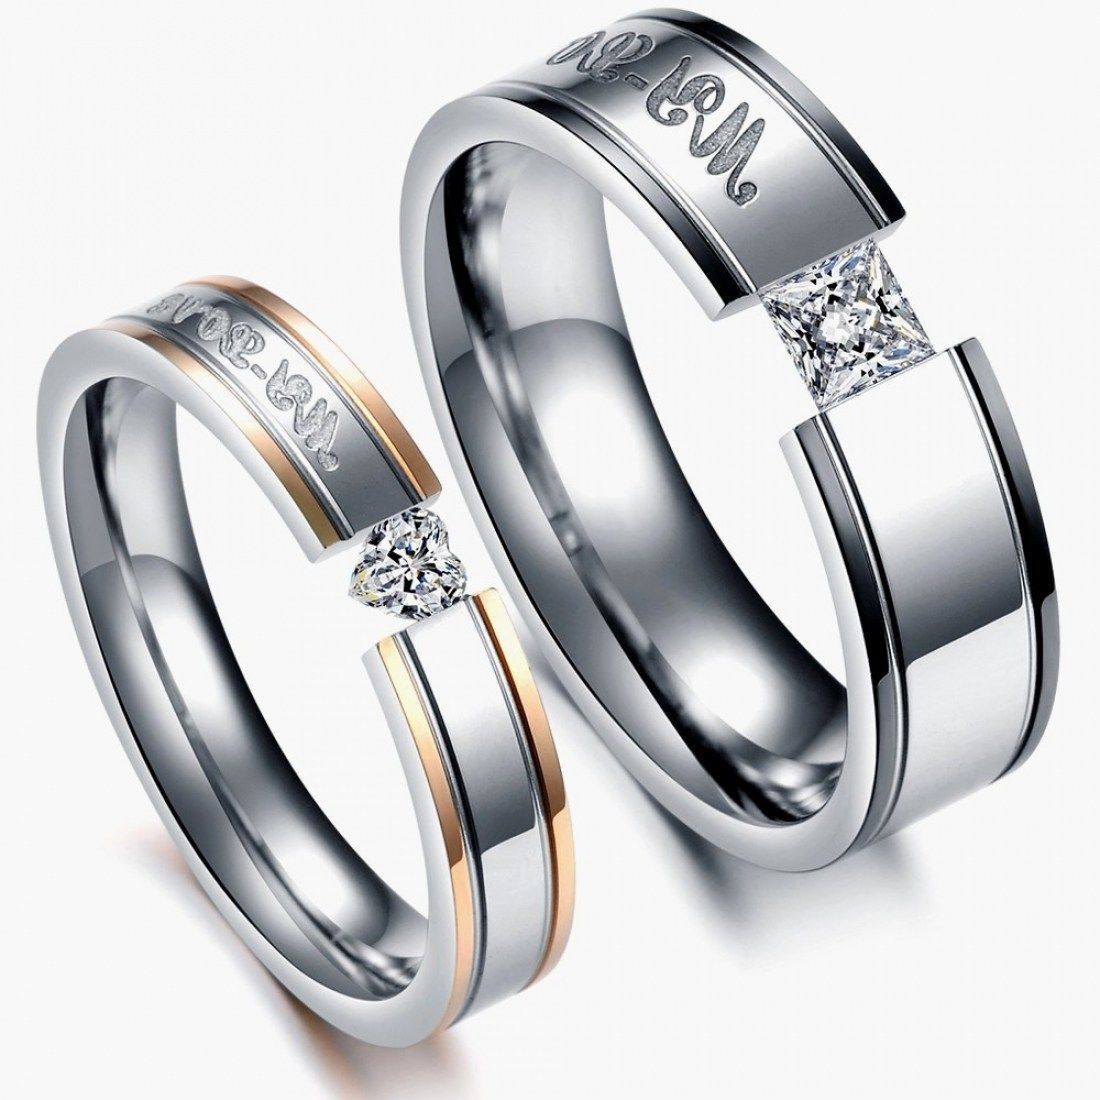 39 Stunning Unique His And Hers Wedding Rings